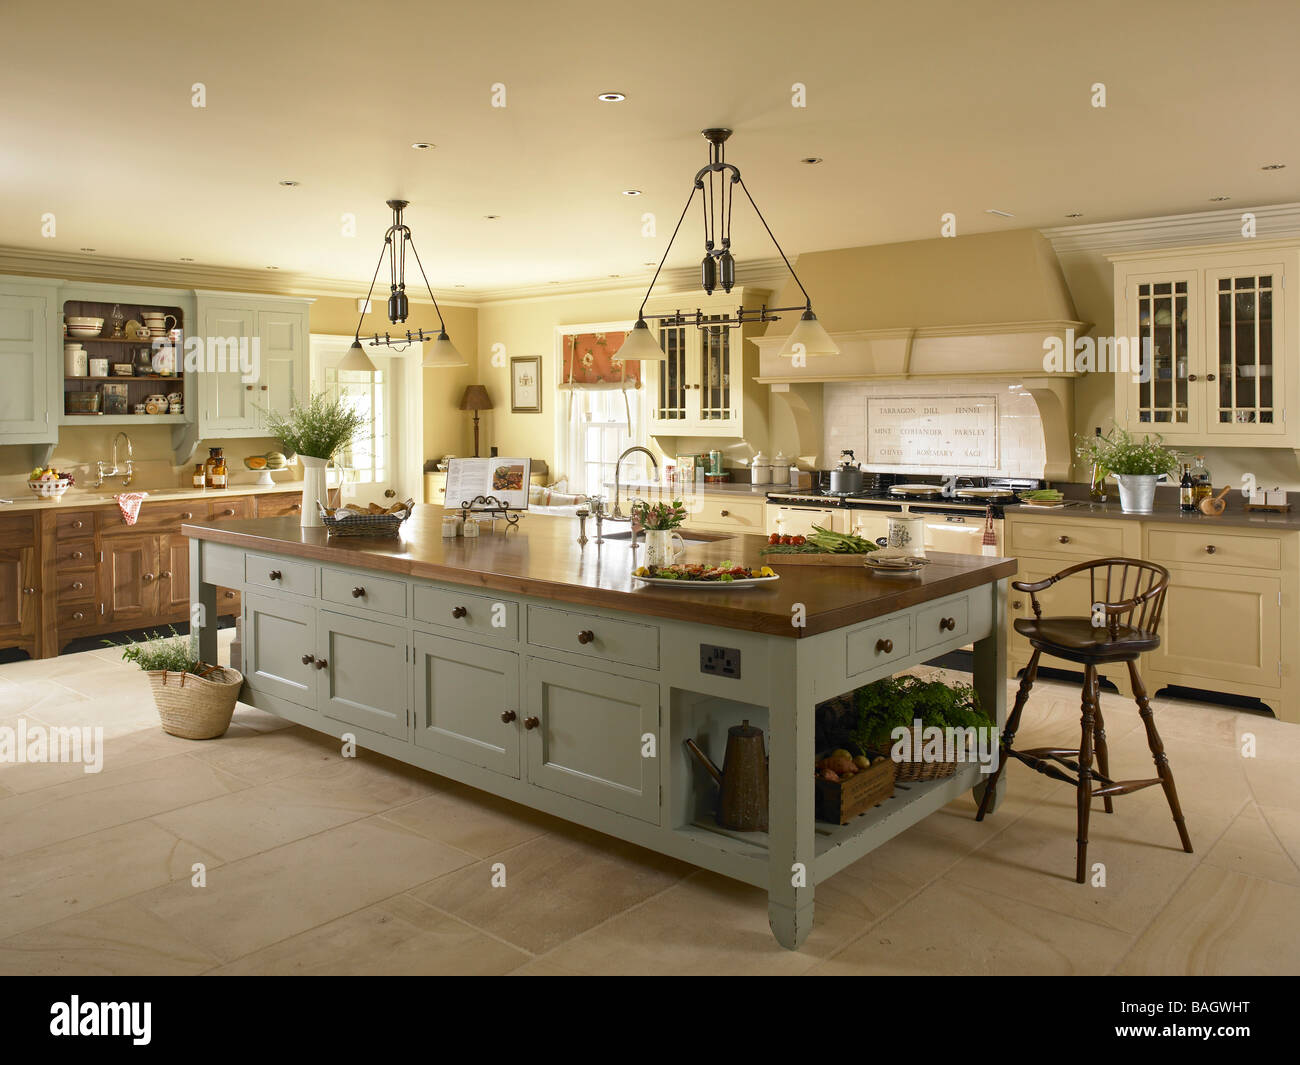 A Large Kitchen Island Unit Stock Photo Royalty Free